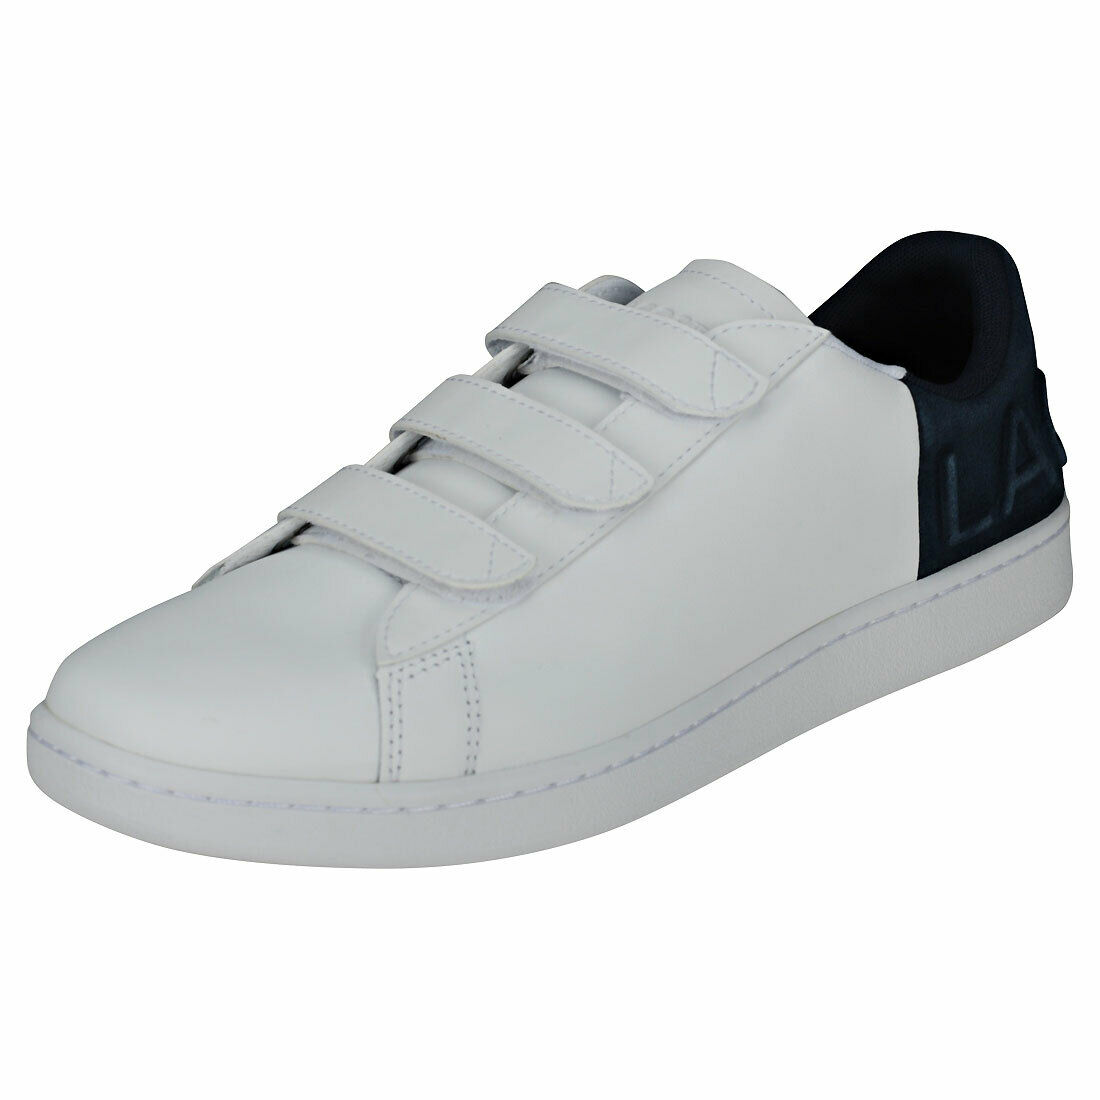 Lacoste Carnaby Evo Strap 318 1 Mens White Navy Casual Trainers